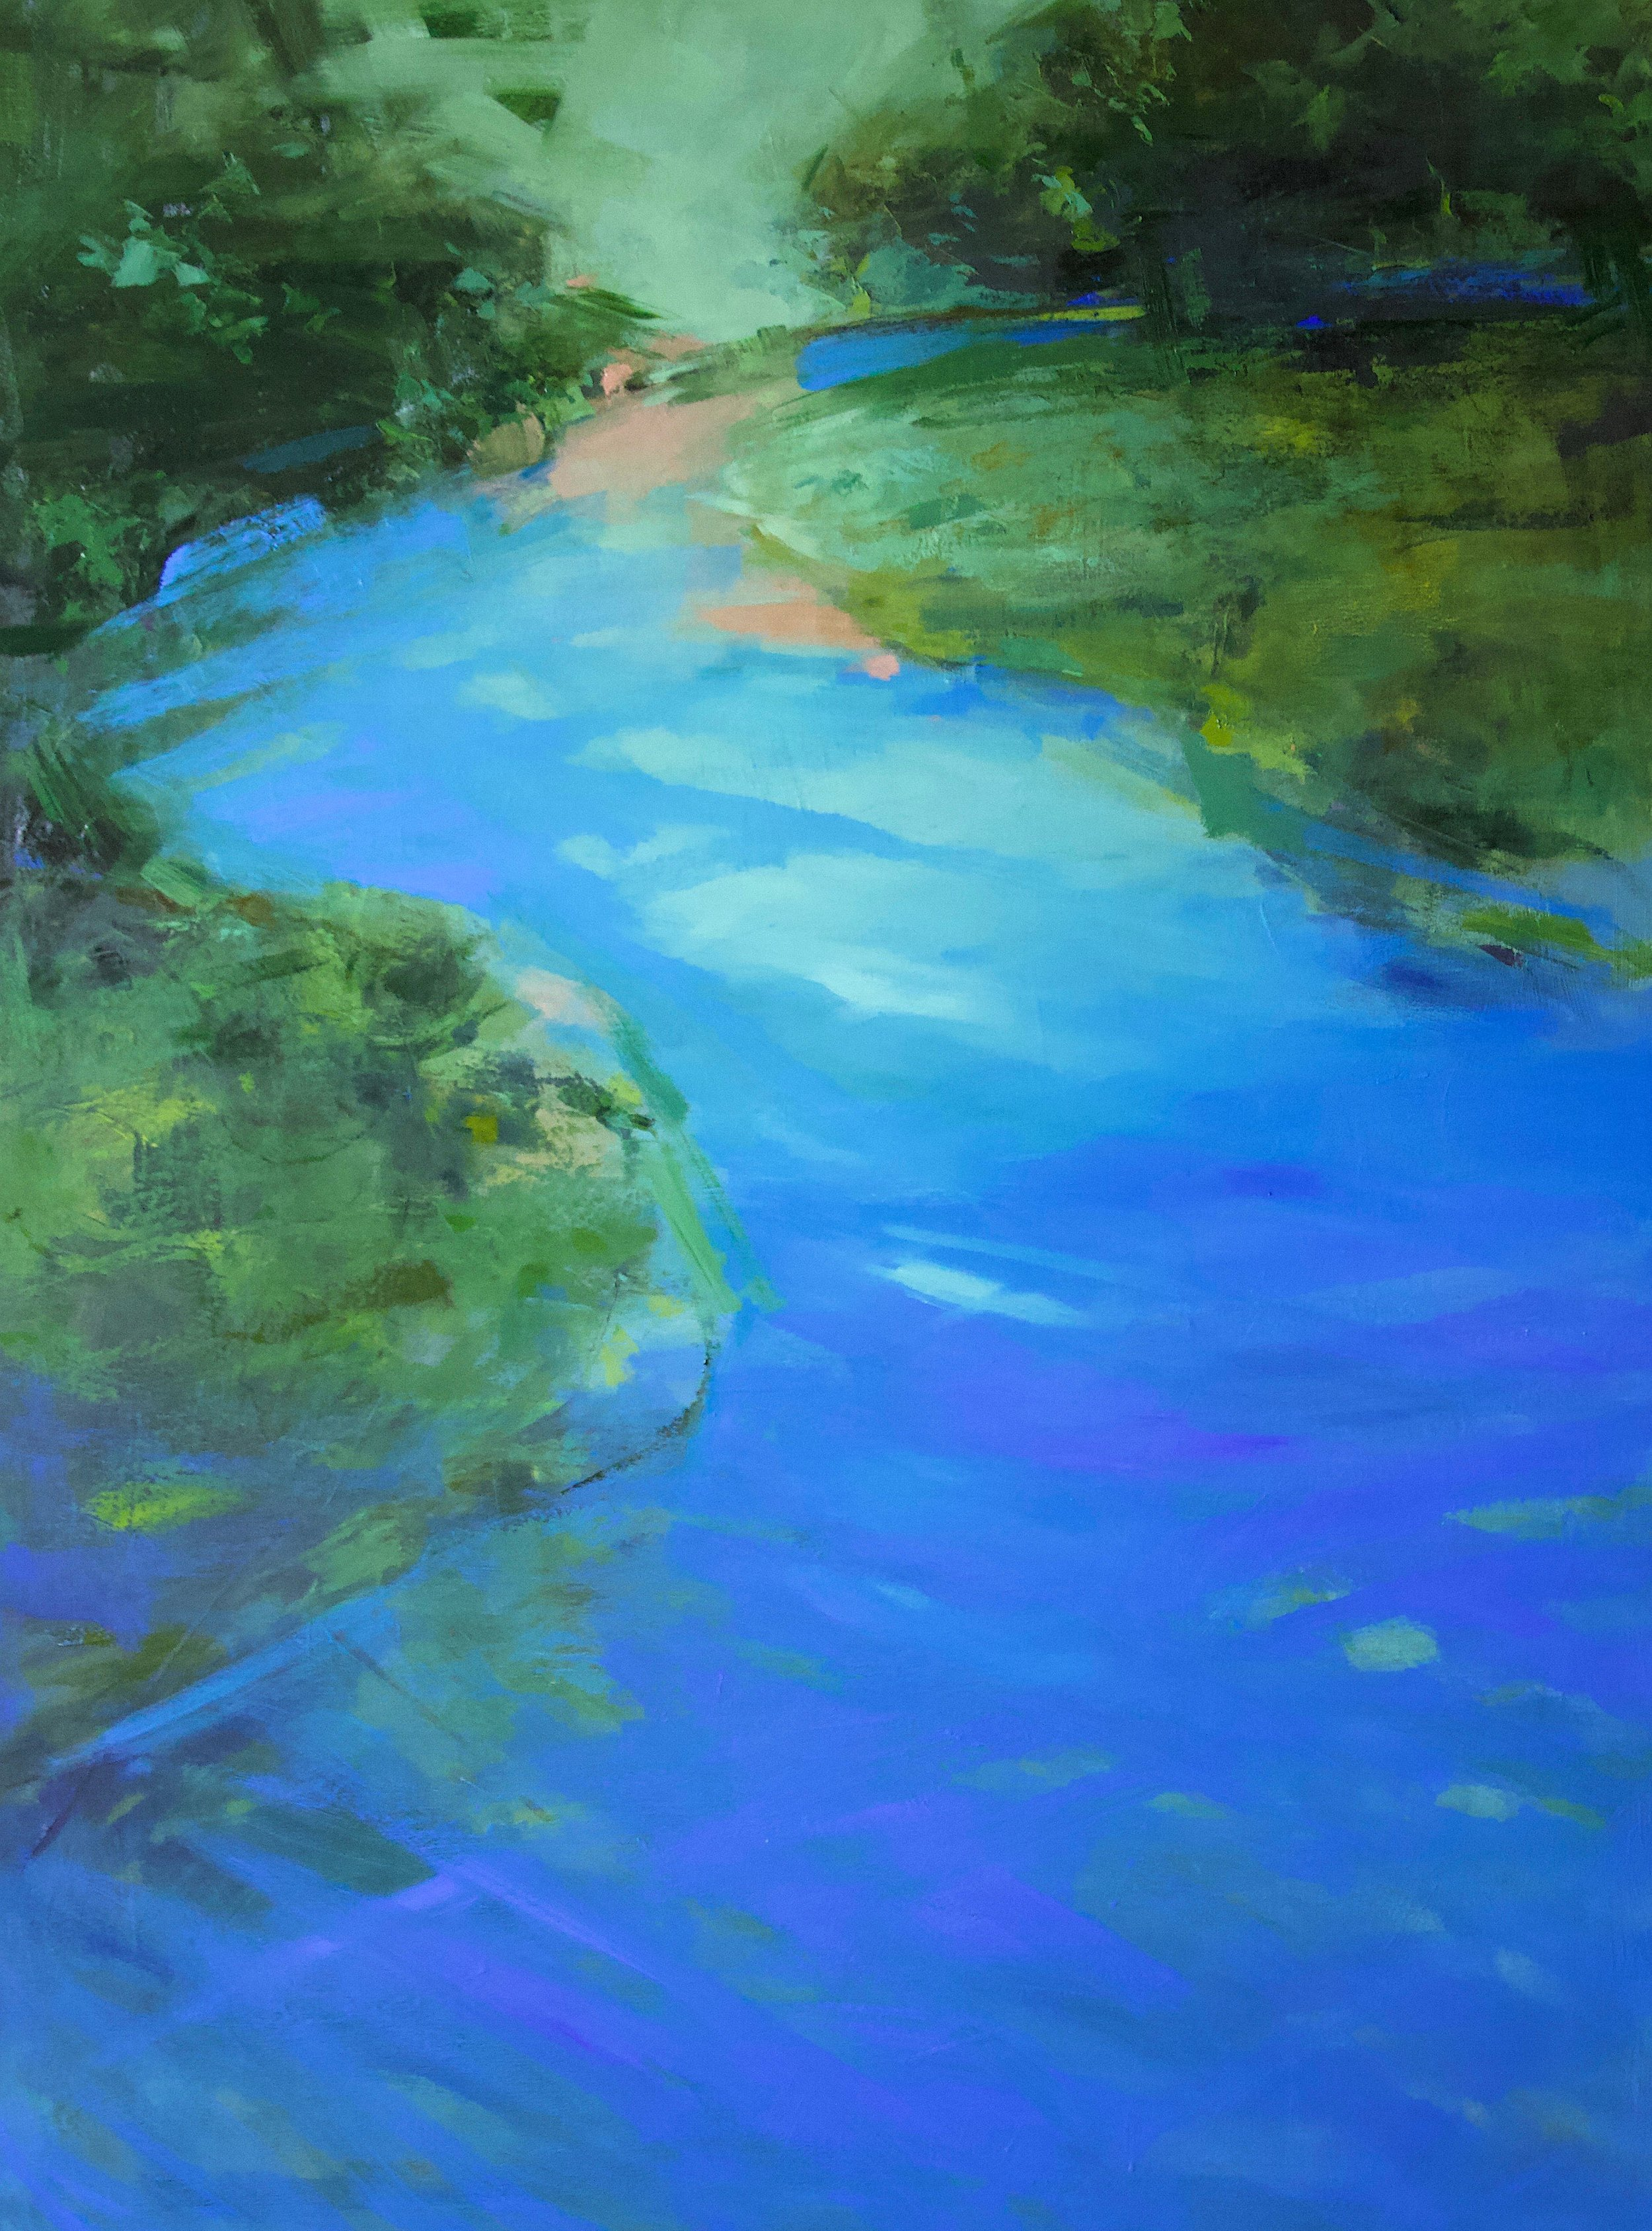 """""""Blue River"""" by Ewa Perz, Oil on canvas, 48x36in, 2018, $2900"""